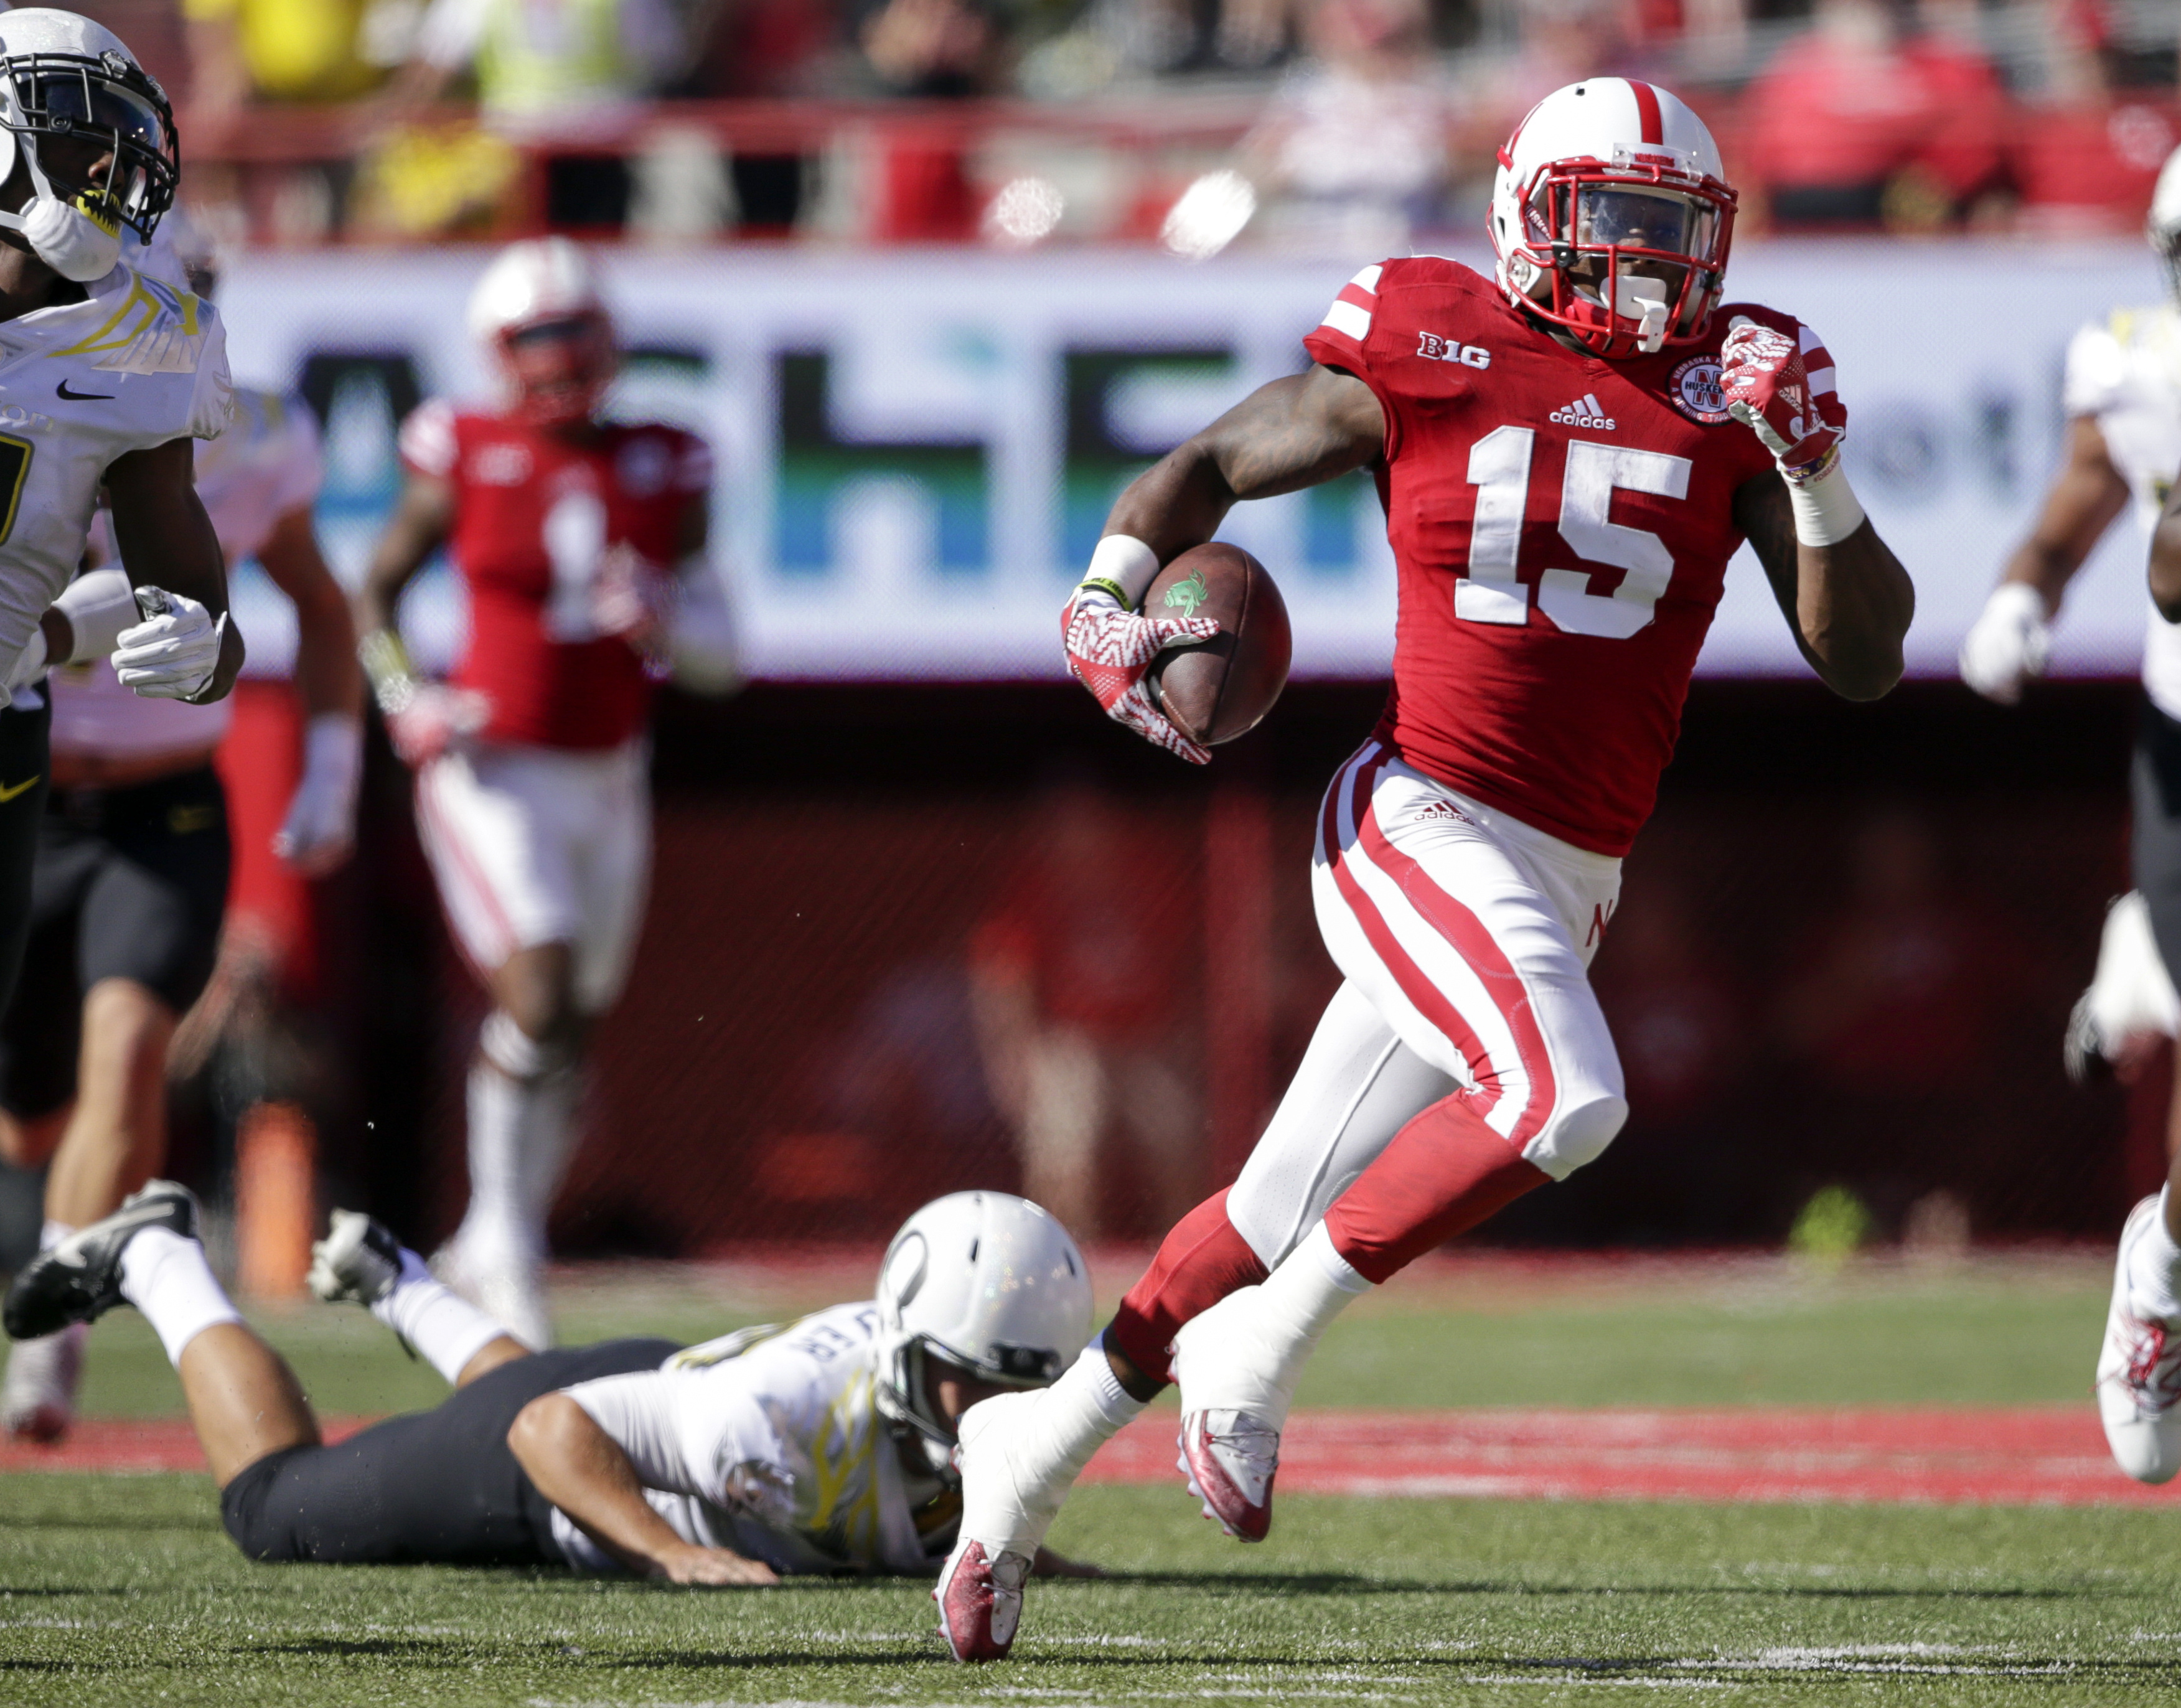 FILE - in this Sept. 17, 2016, file photo, Nebraska wide receiver De'Mornay Pierson-El (15) runs past a tackle attempt by Oregon defensive back Jaren Zadlo (38) during the first half of an NCAA college football game in Lincoln, Neb. Nebraska's dynamic ret